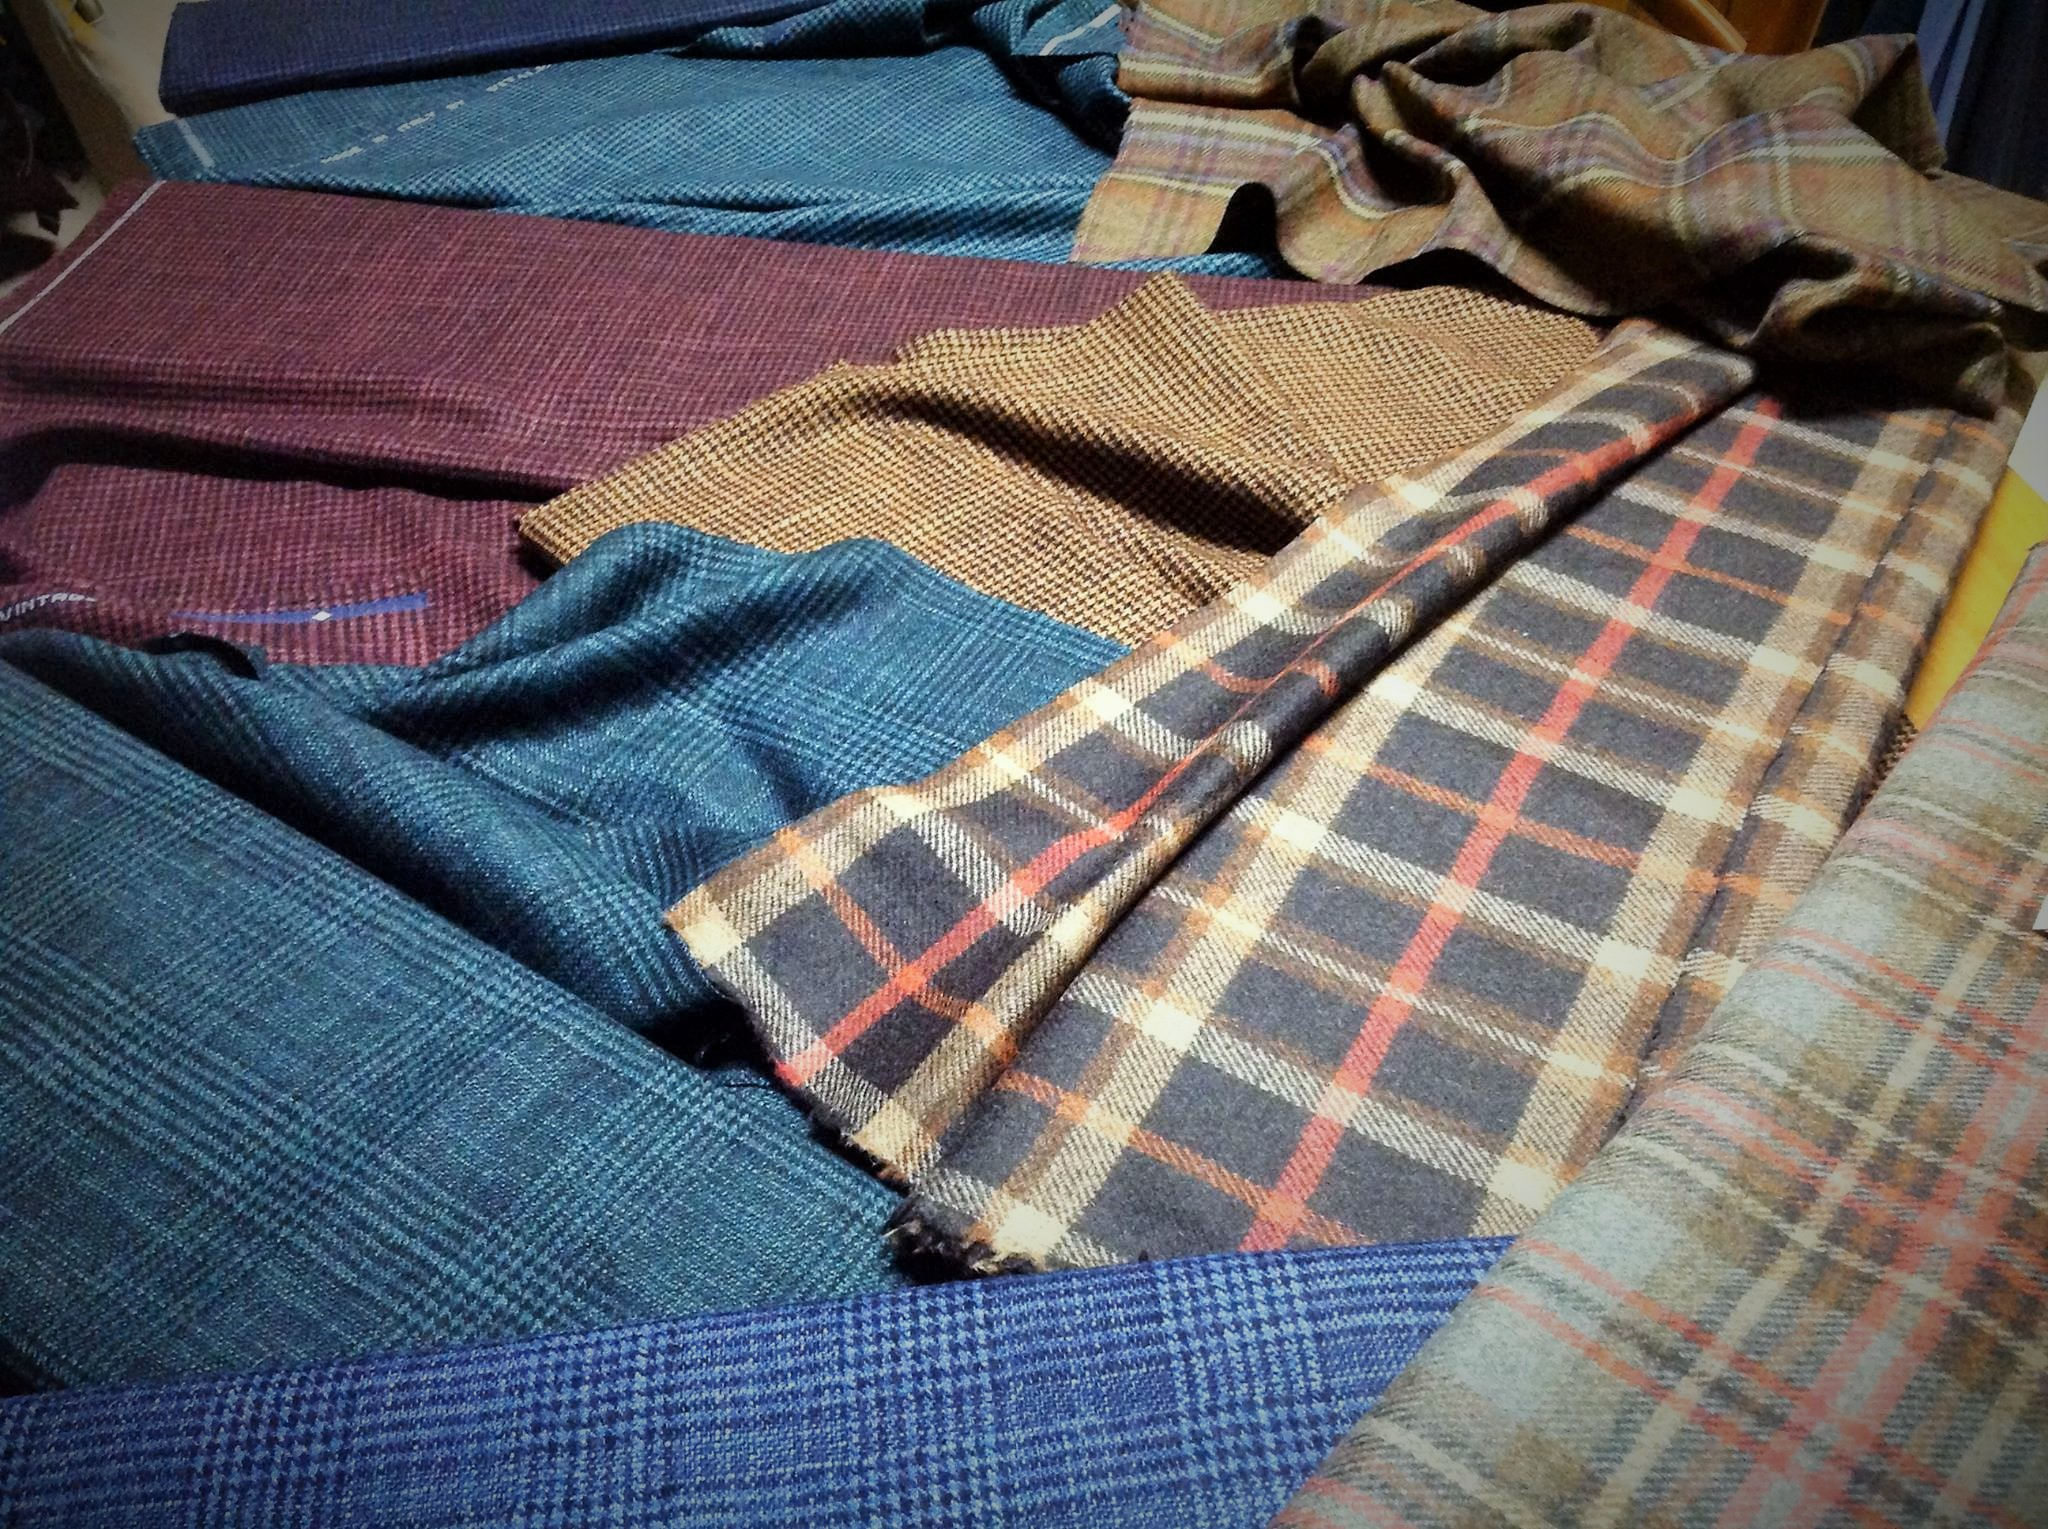 Winter fabrics selection by Sartoria Crimi